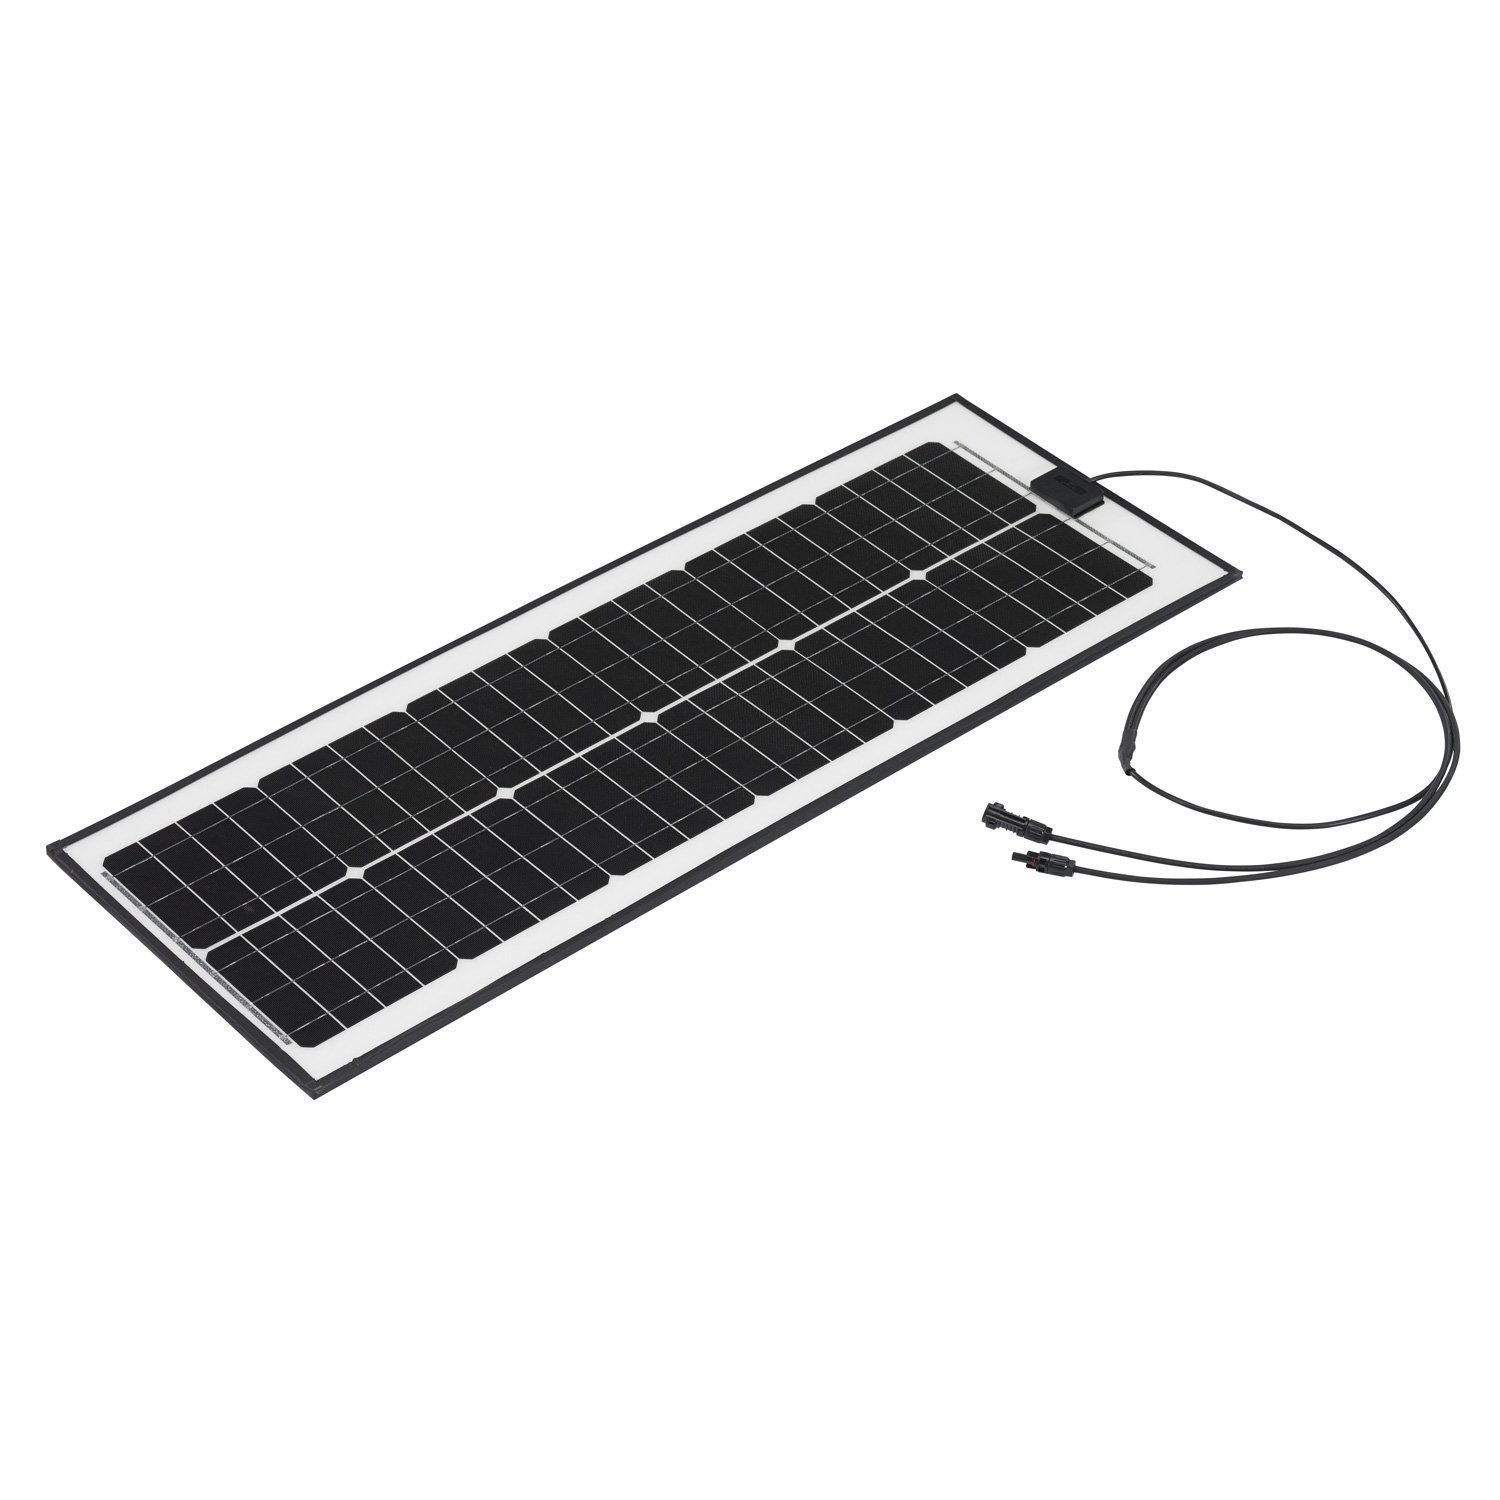 Solar Panel for Emergy 1000 / 3000 Recharging Kit